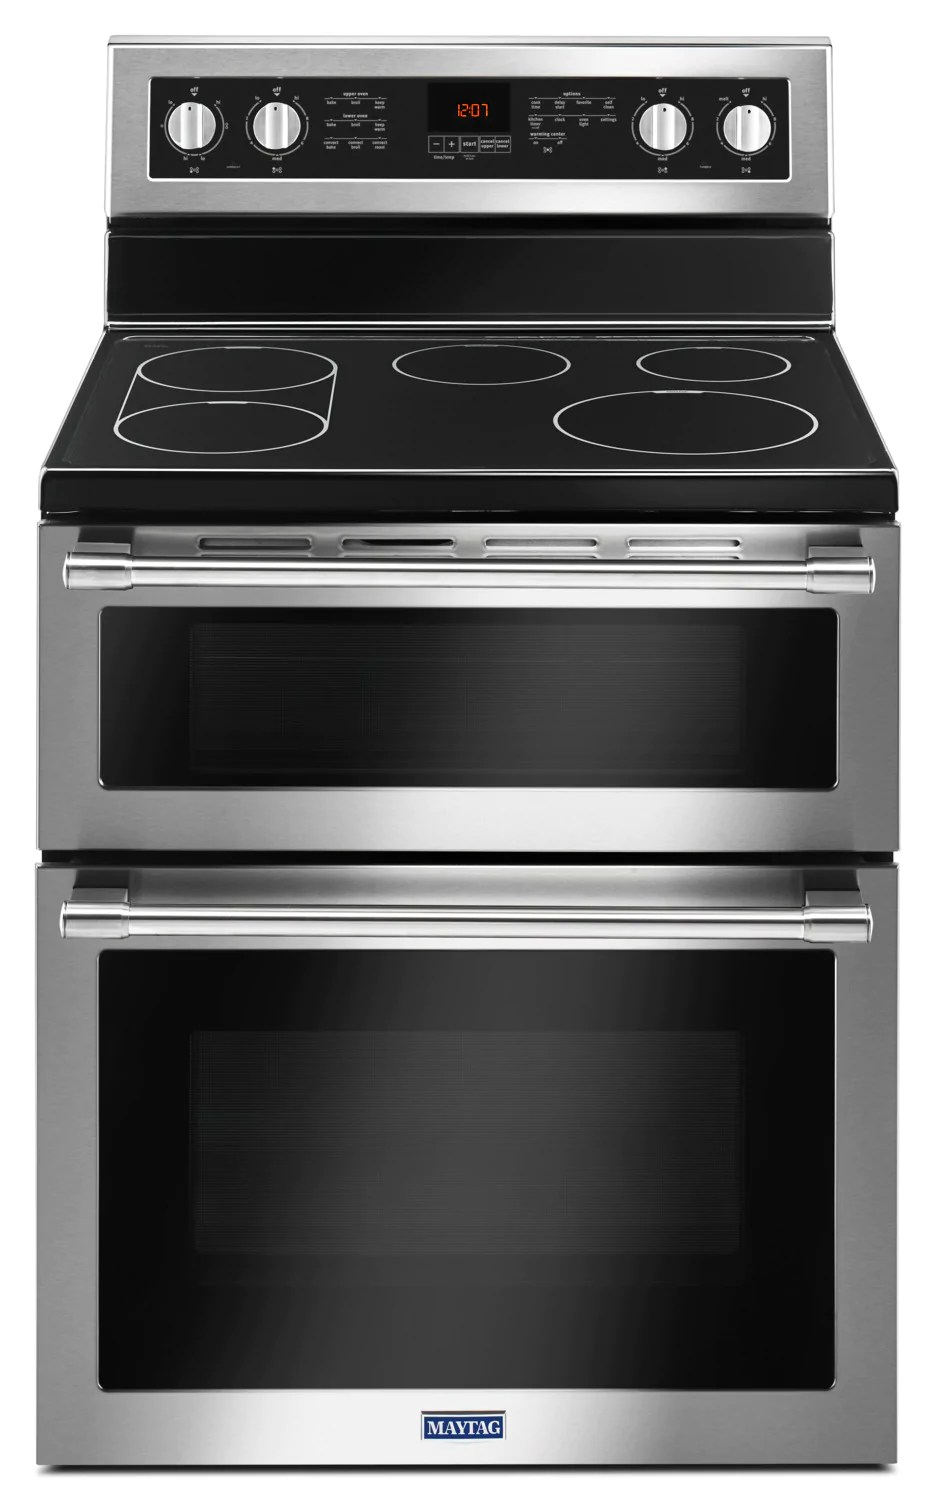 maytag 6 7 cu ft double oven electric range with true convection ymet8800fz